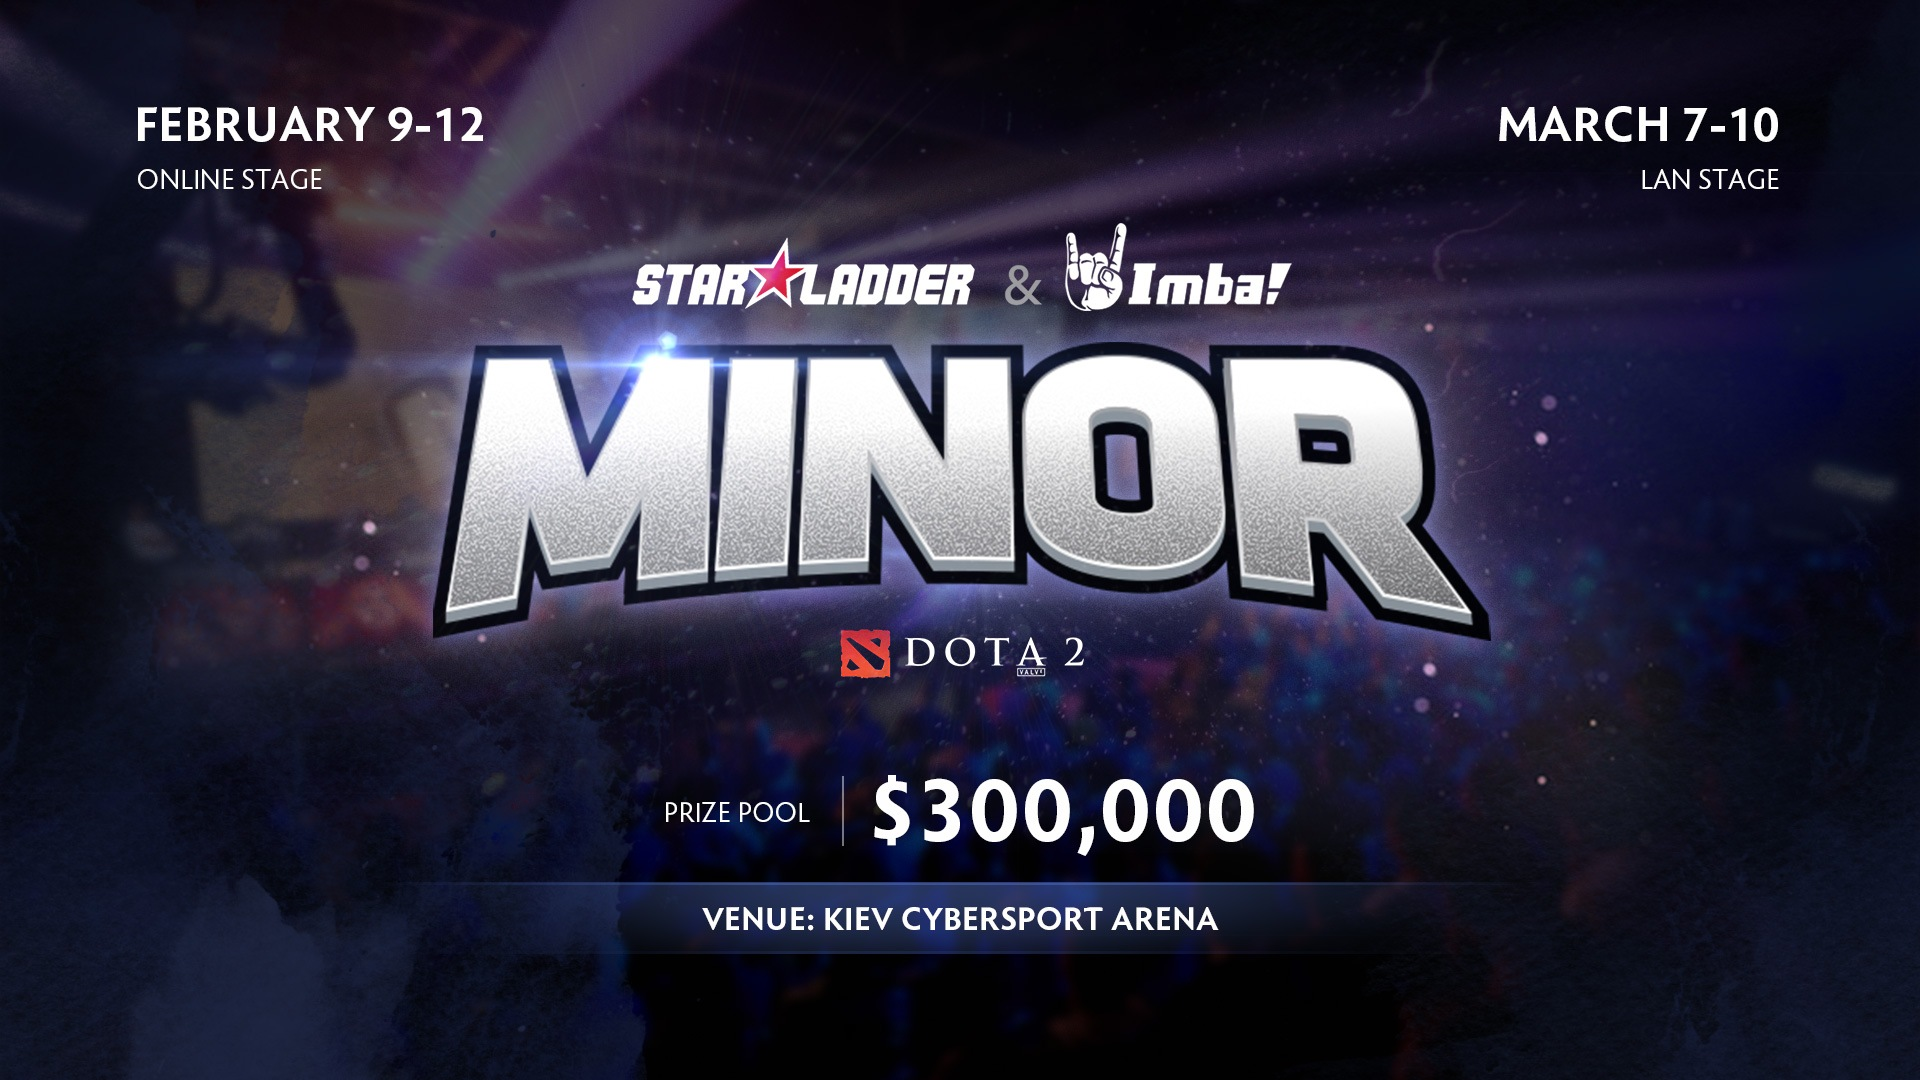 Here are the  details of the Starladder IMBATV Minor